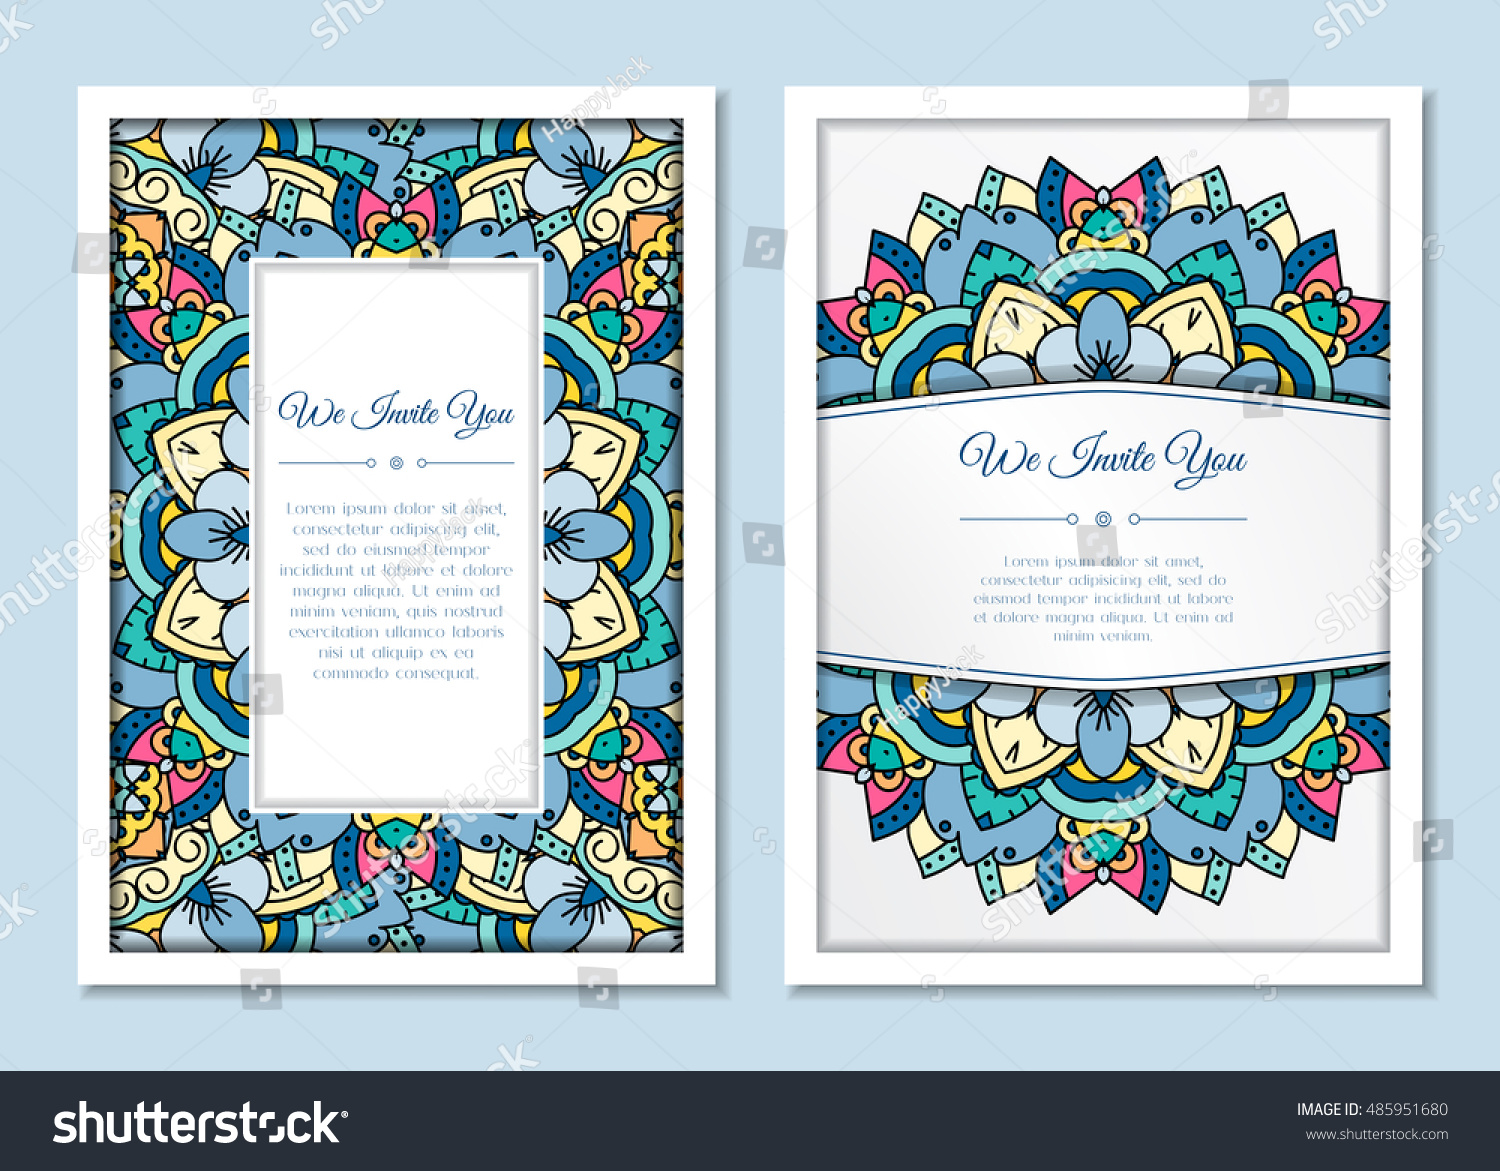 Cute Vintage Doodle Cards Set Invitation Stock Vector Royalty Free